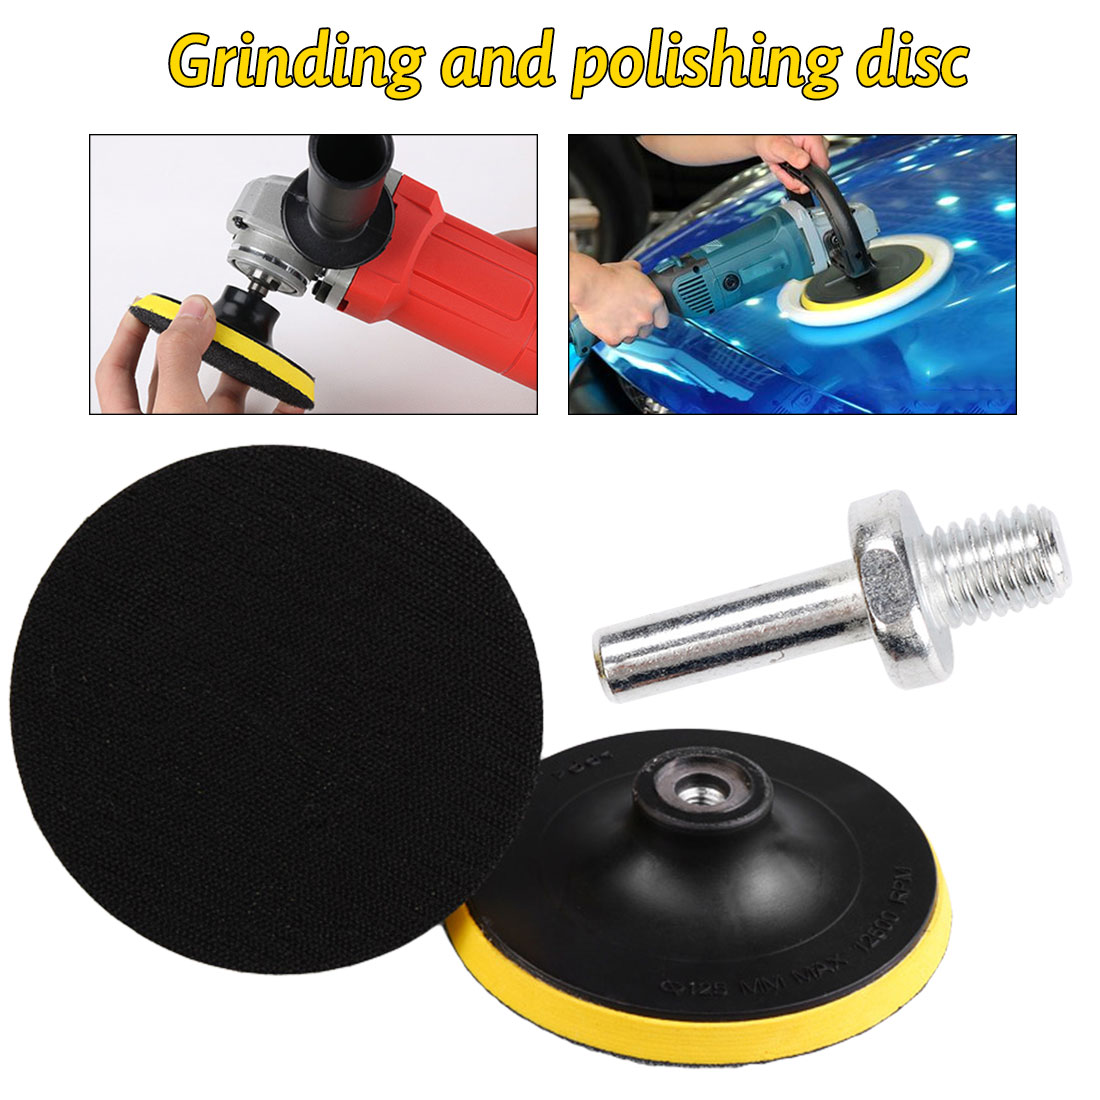 Sanding <font><b>Disc</b></font> Backing Pad 3 inch <font><b>75mm</b></font> Polish Buffer Plate M10 Thread Hook and Loop Backed Disk fit Sander Grinder Electric Drill image